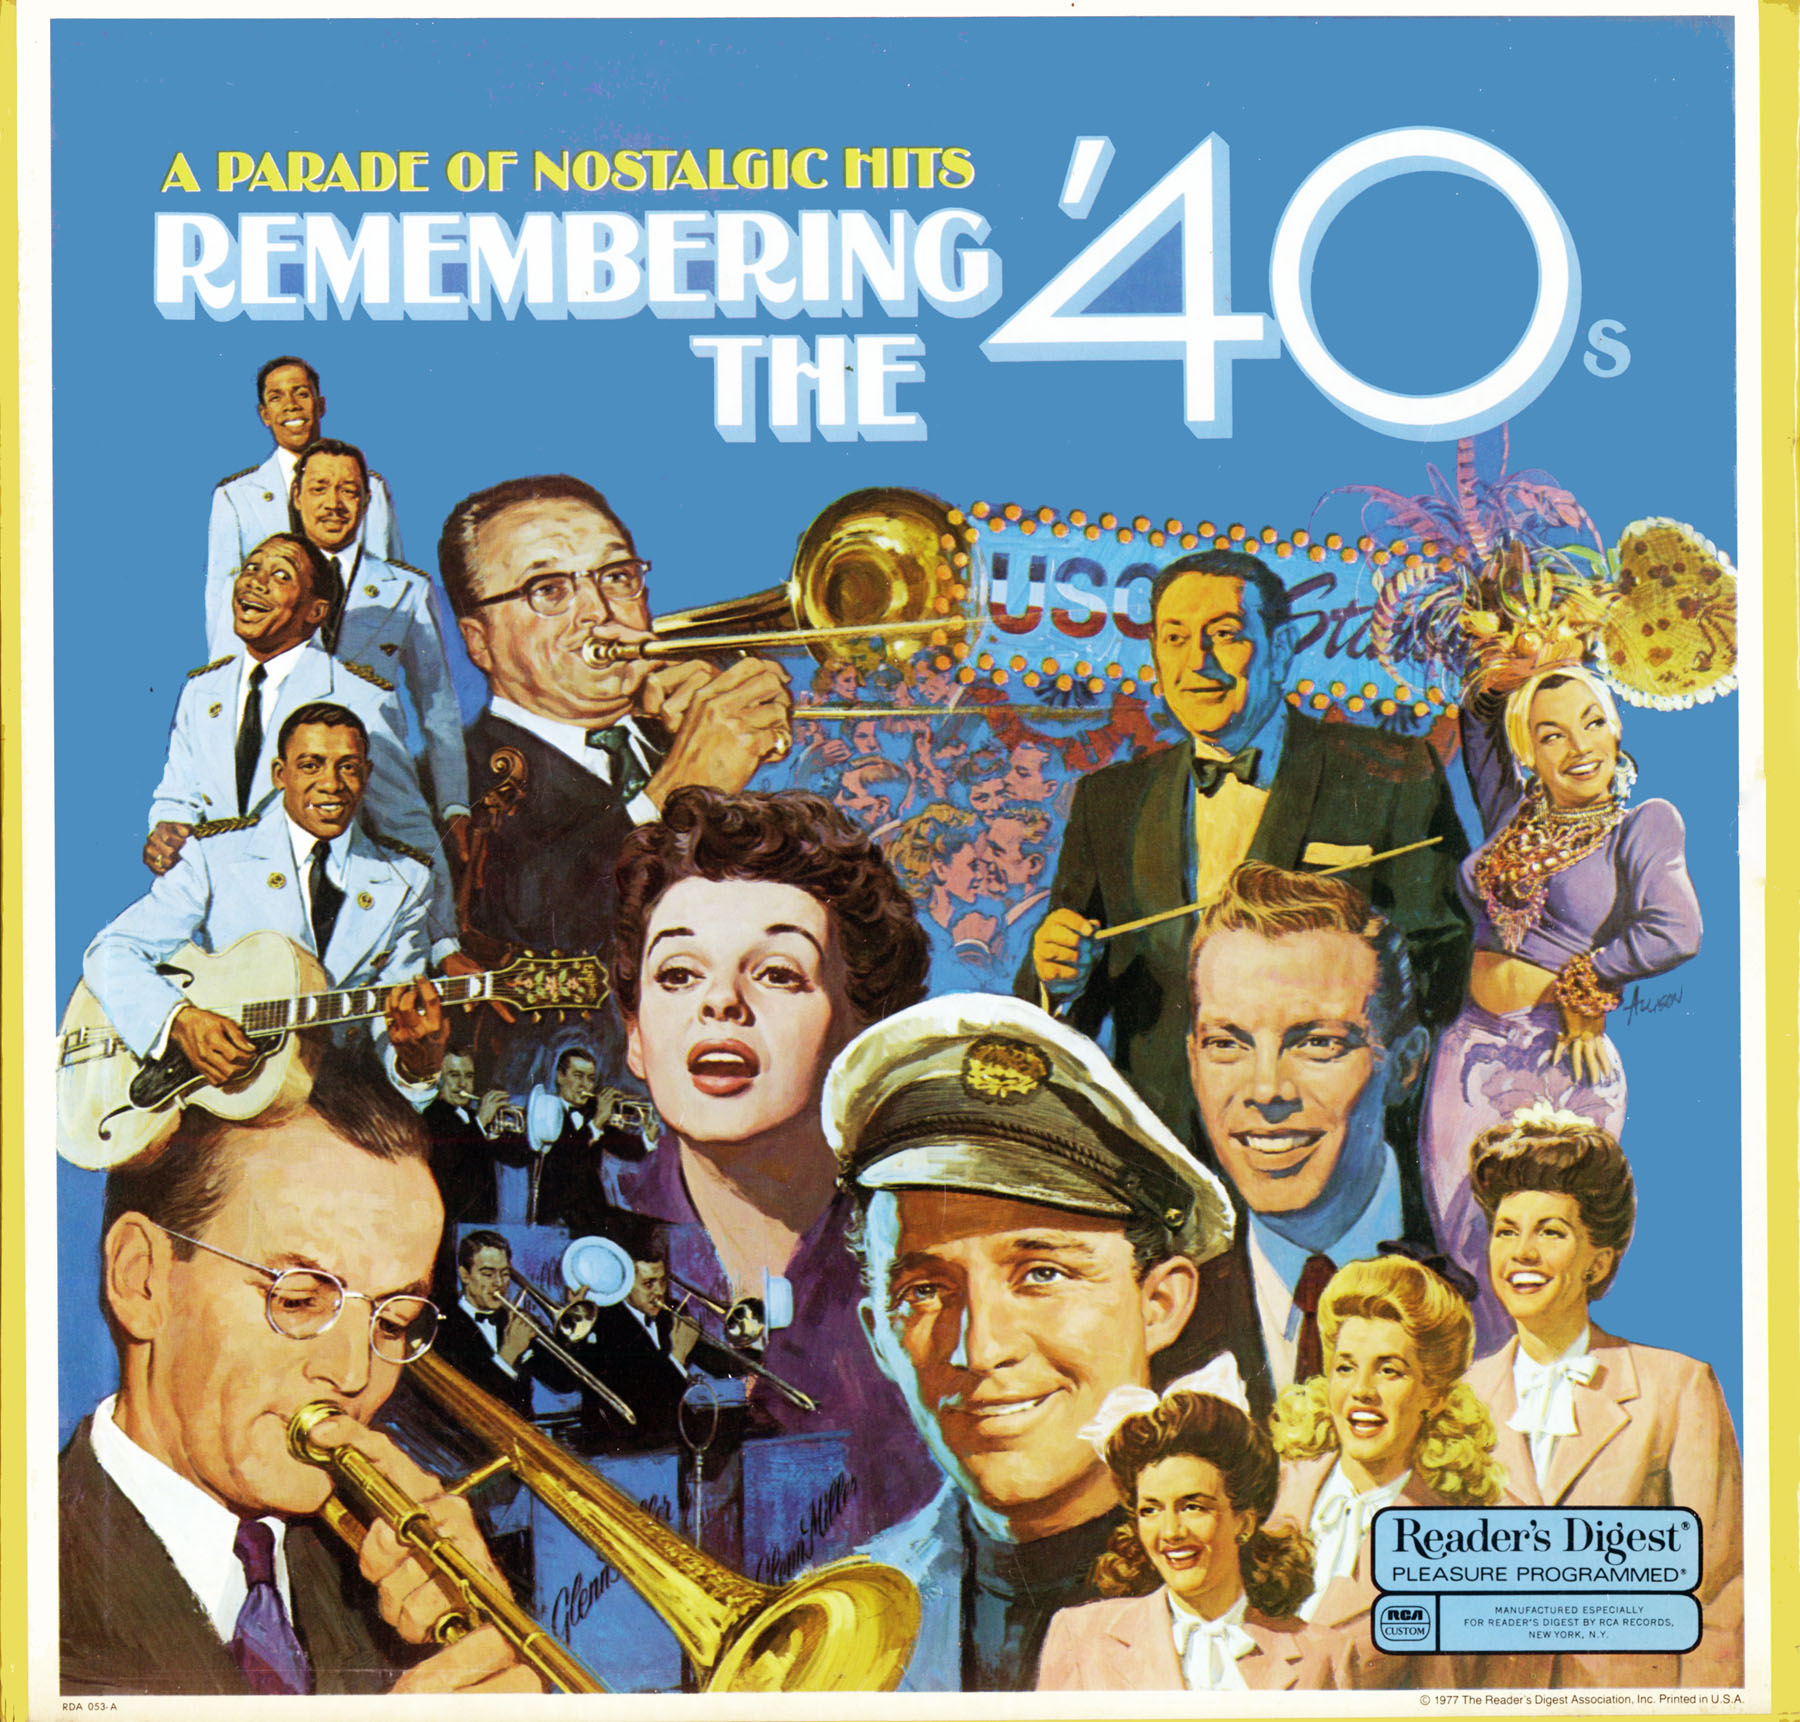 RDA053 - Remembering the '40s on CD